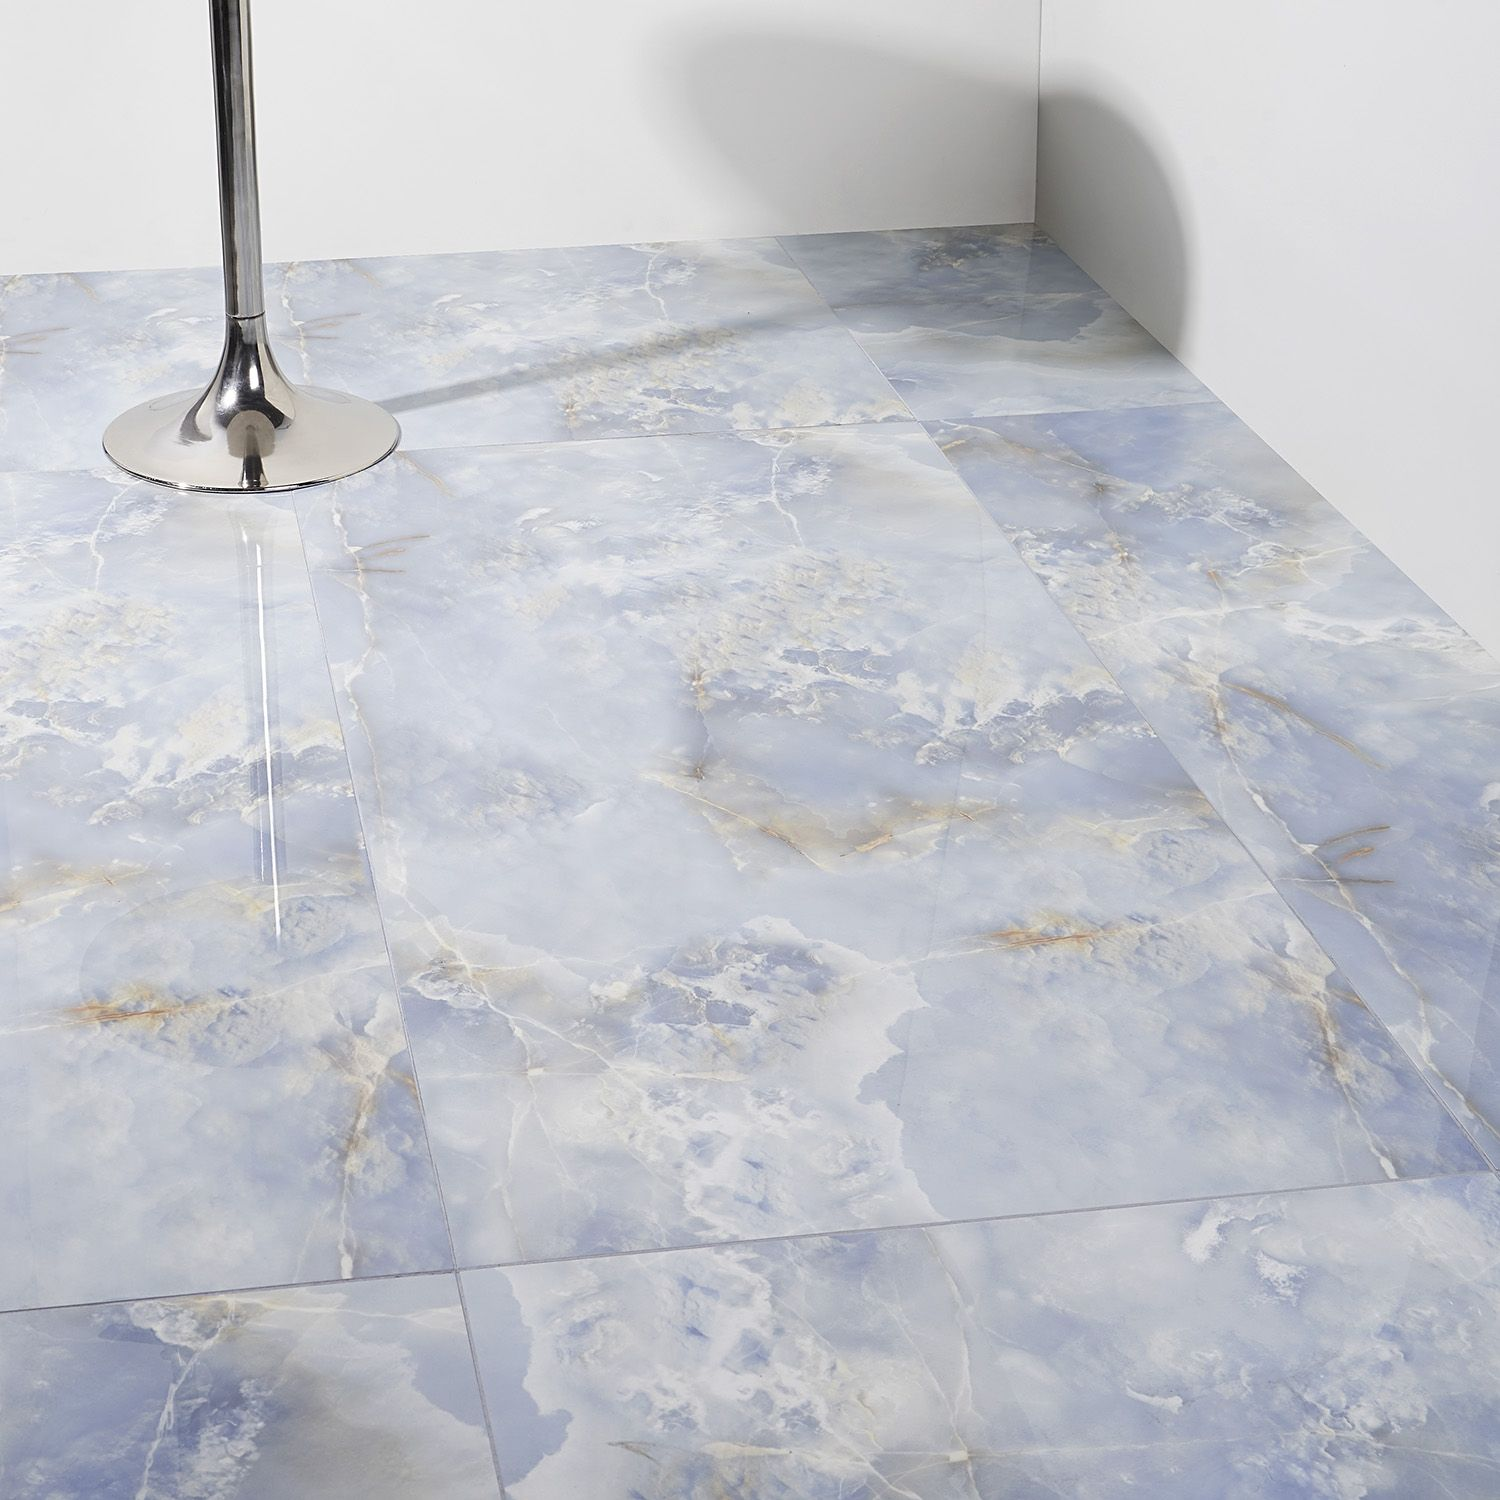 Lumina Caspian Onyx 24x48 Polished Porcelain Tile